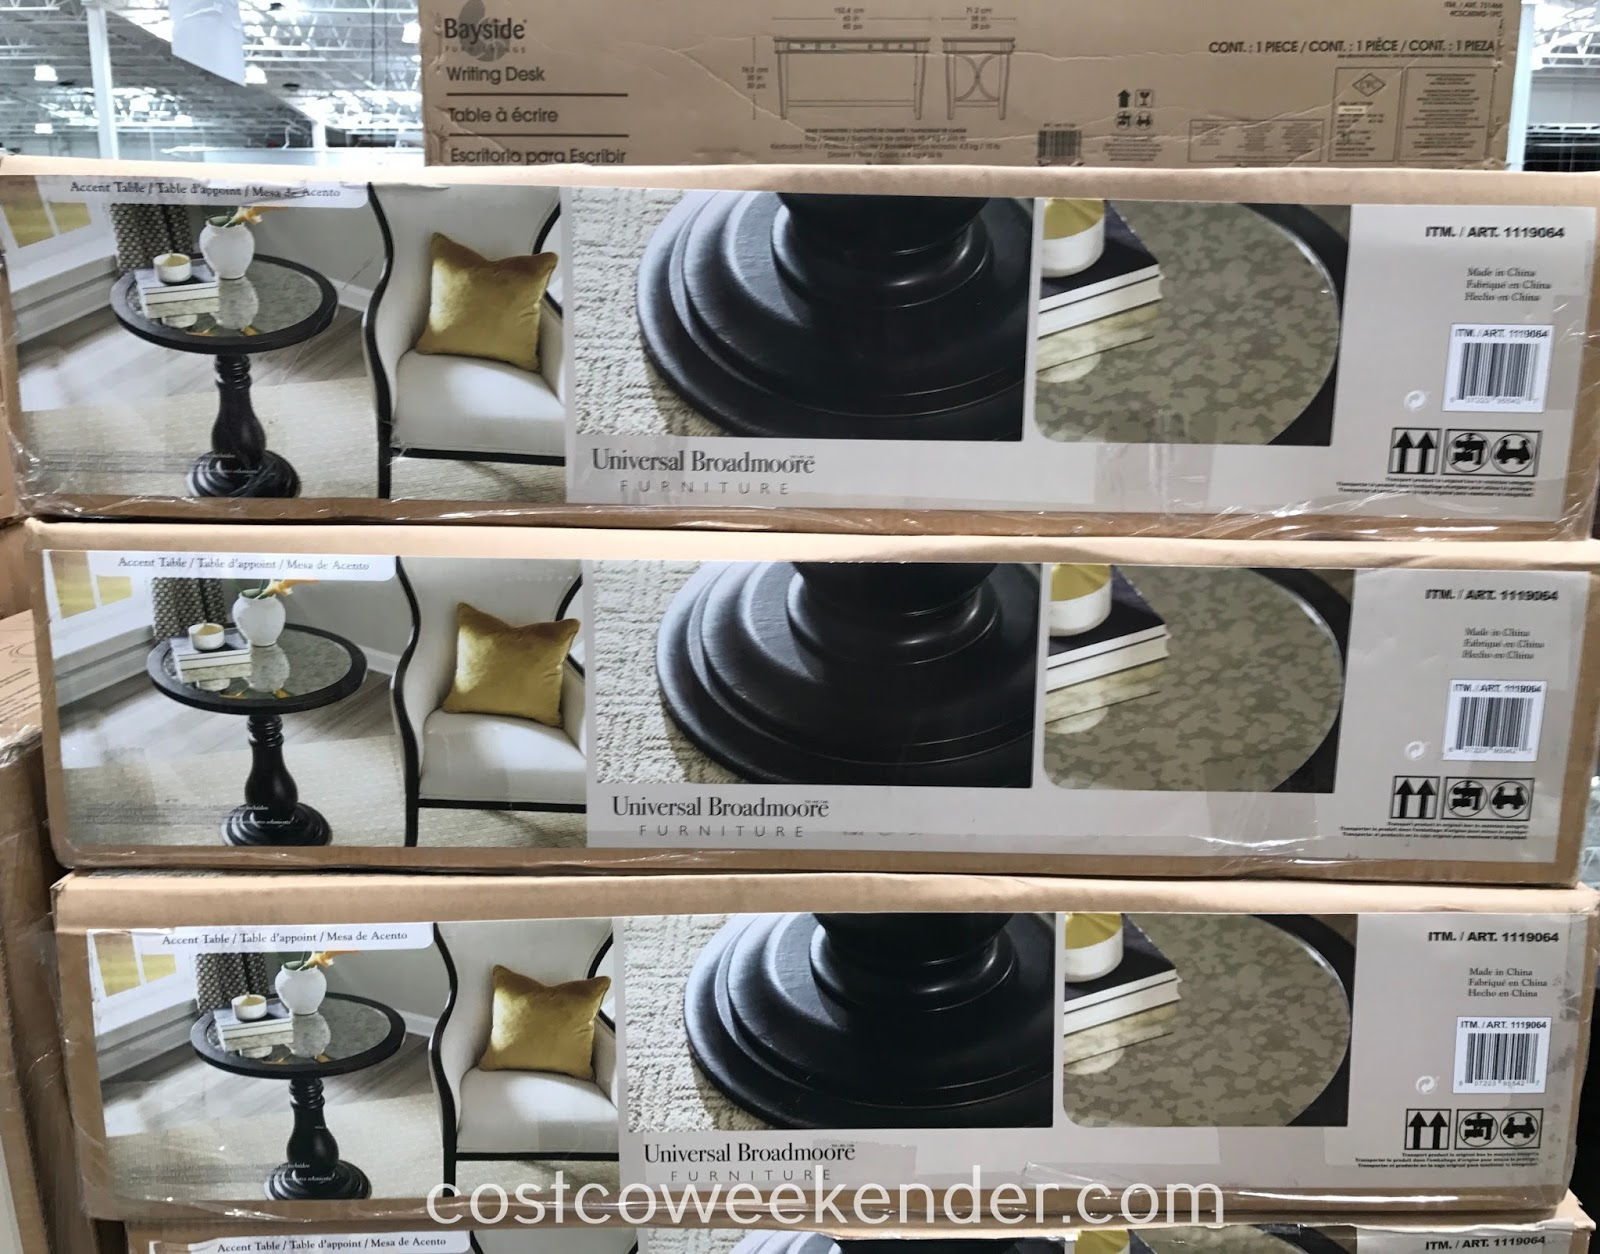 Costco 1119064 - Universal Broadmoore Mirror Top Accent Table: great for any living room